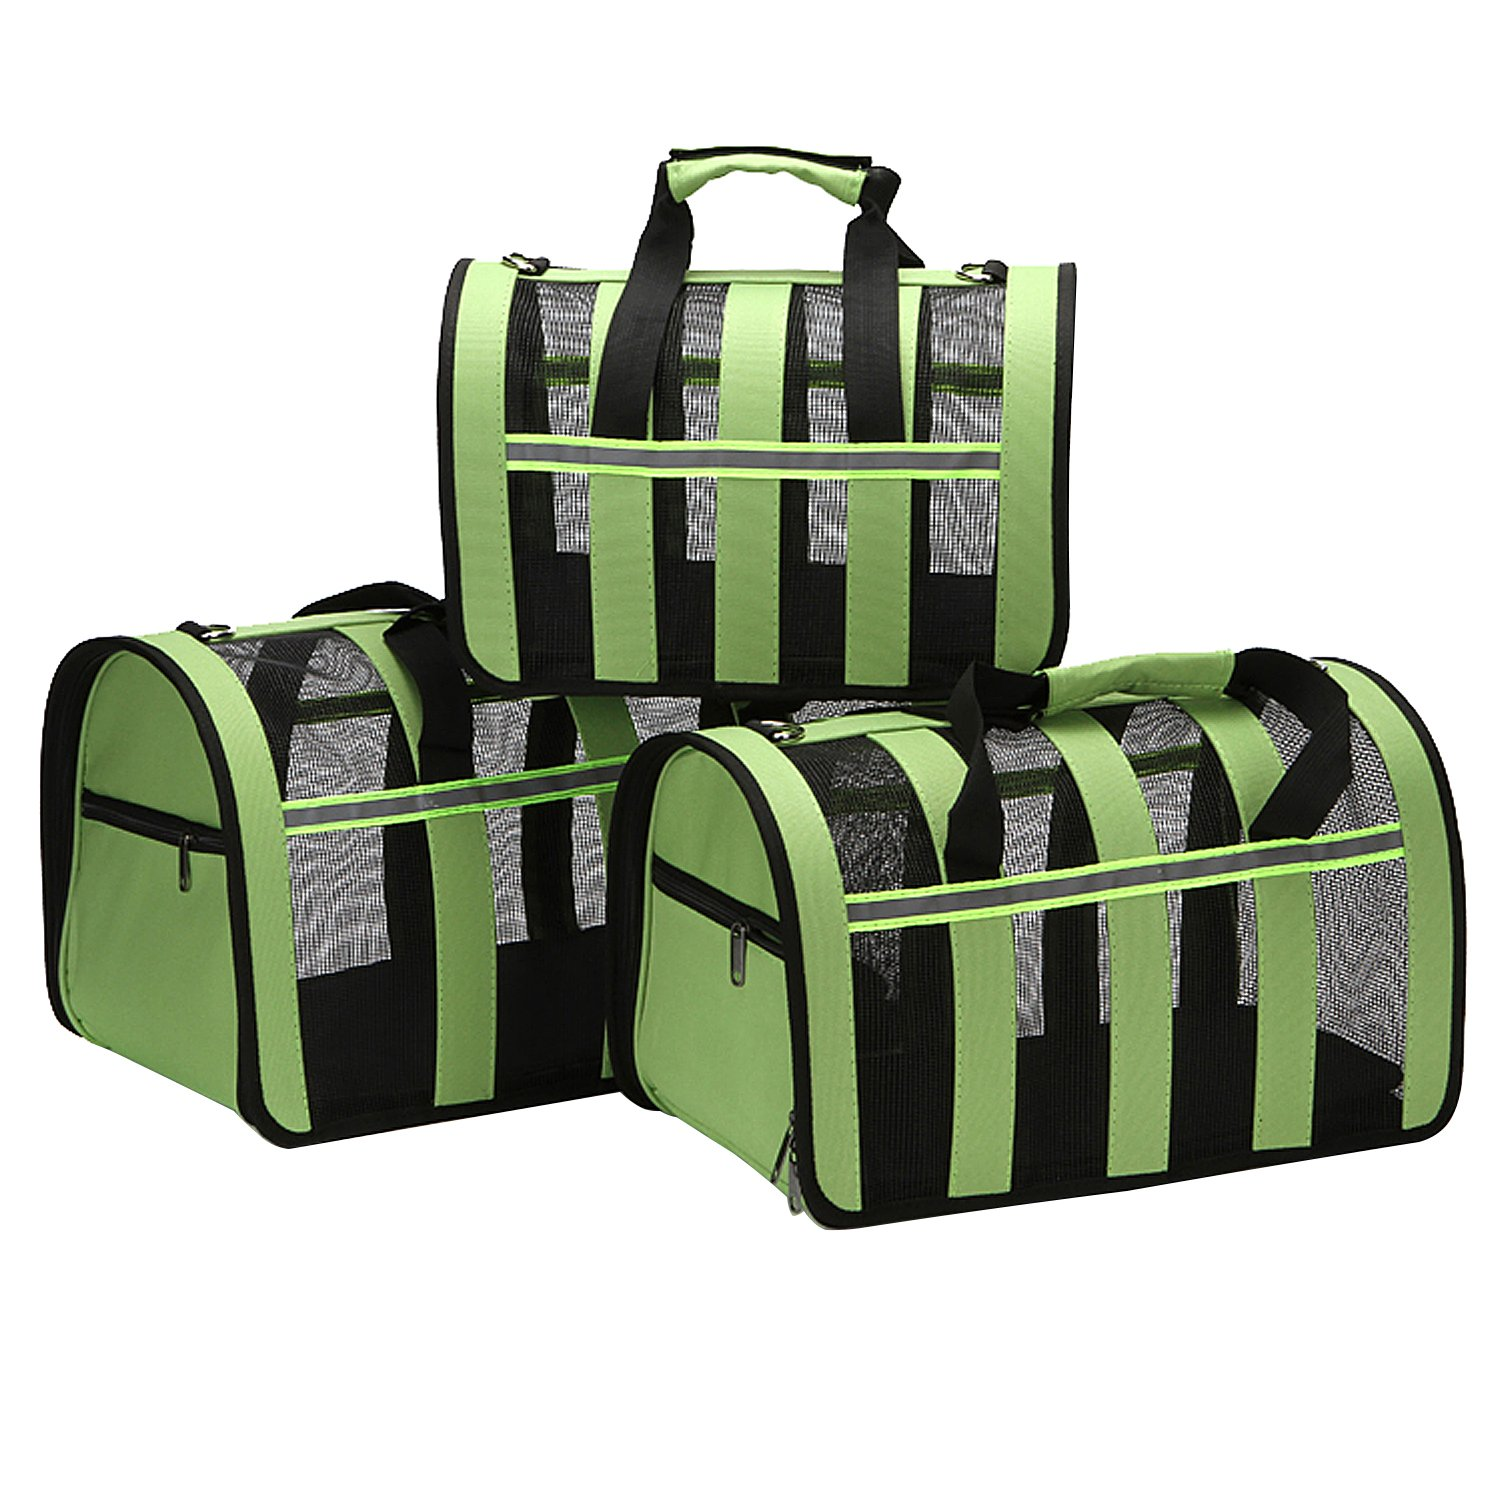 Pet Deluxe Portable Pet Carrier-Small Animals Travel Carrier, Soft Sided Tote Bag Purse,Airline Approved, Perfect for Small Dogs,Puppy, Cats (S) by Pet Deluxe (Image #3)